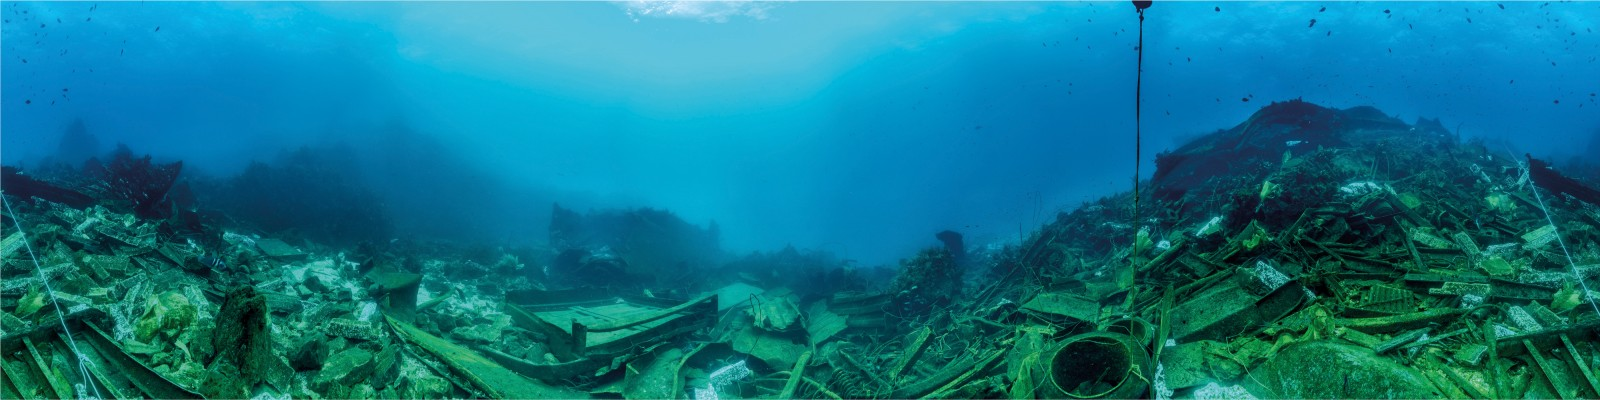 BEFORE  The wreck of the Rena left a huge field of debris strewn across the reef between the bow and stern sections. Using a specially modified tripod and underwater camera, photographer Darryl Torckler created a 360º panorama from the centre of the field (position marked on previous spread) by digitally stitching 17 separate exposures.